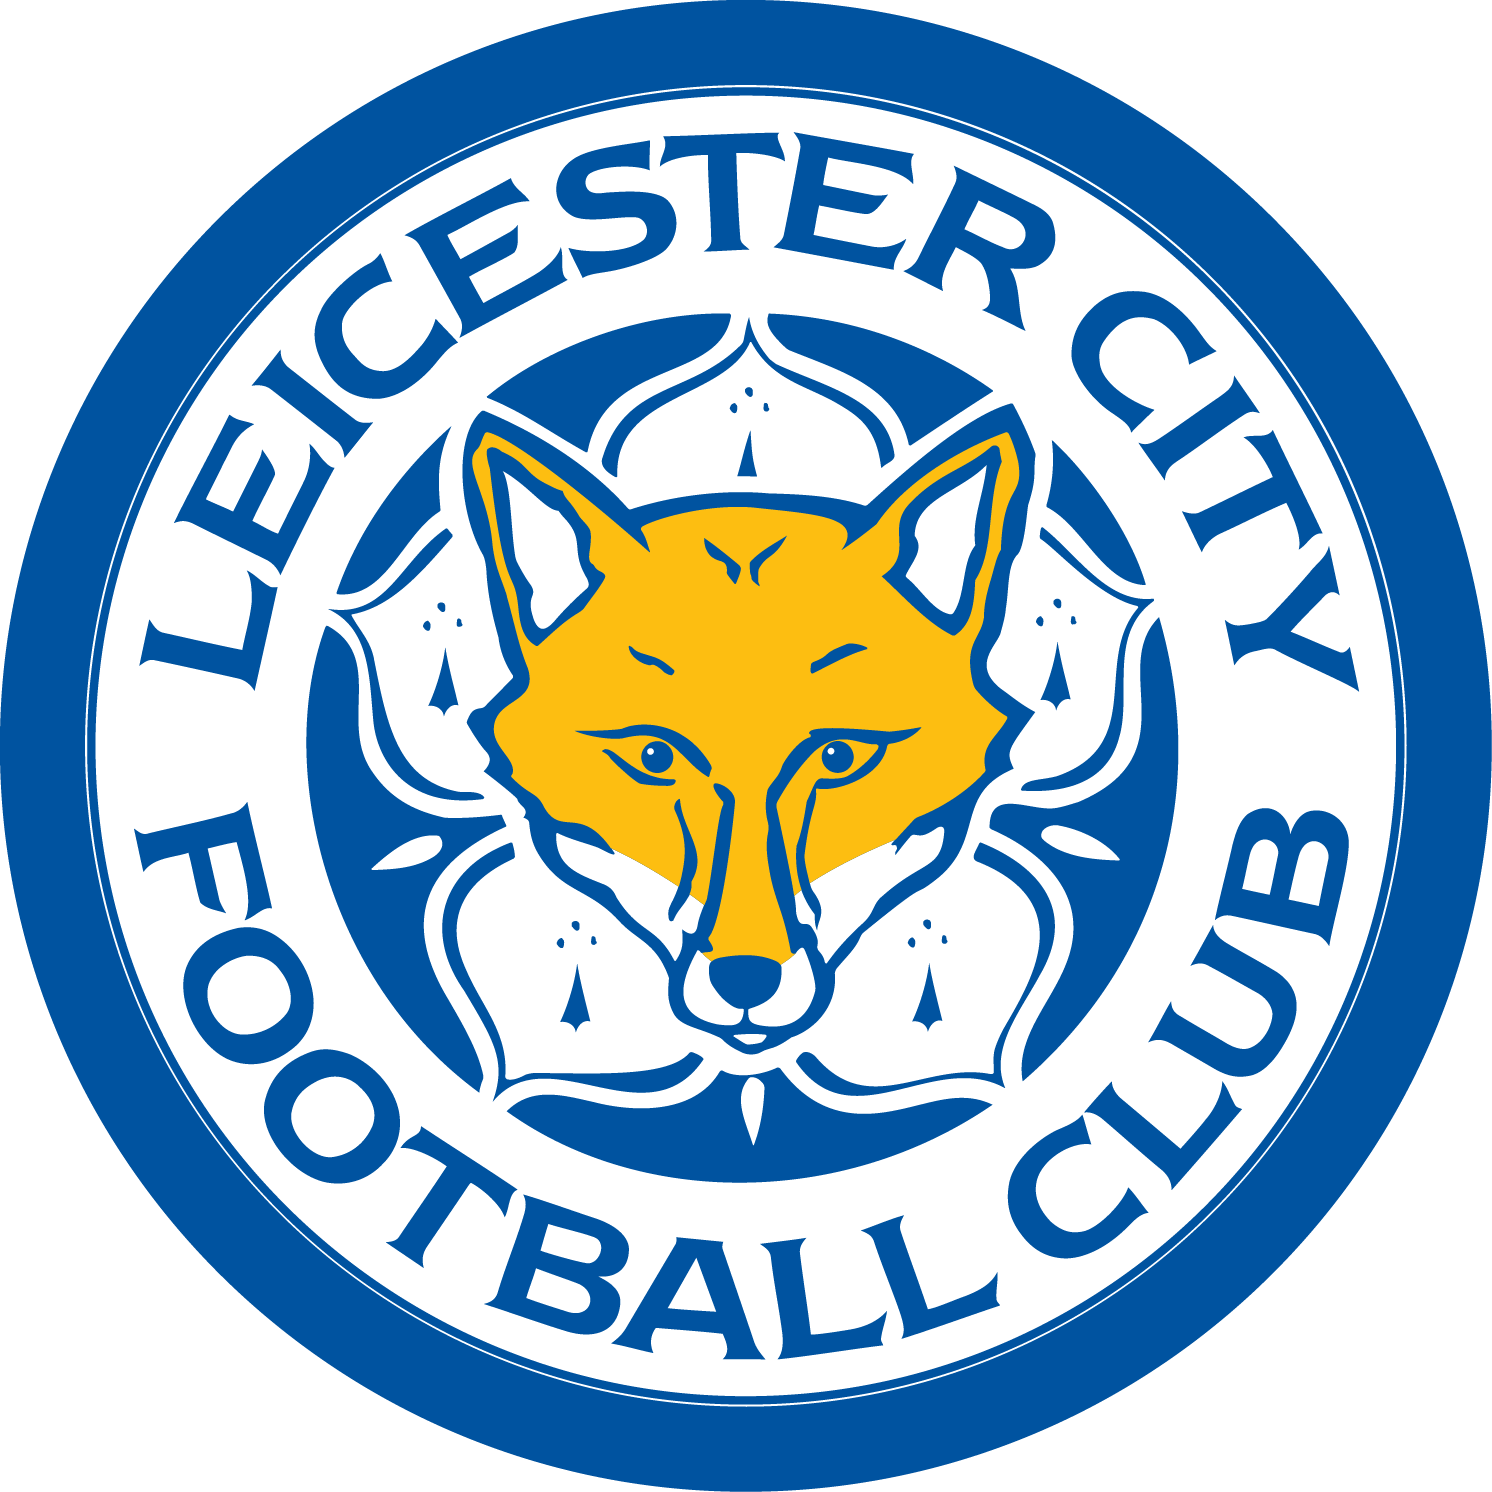 download logo leicester city club svg eps png psd ai icon ...